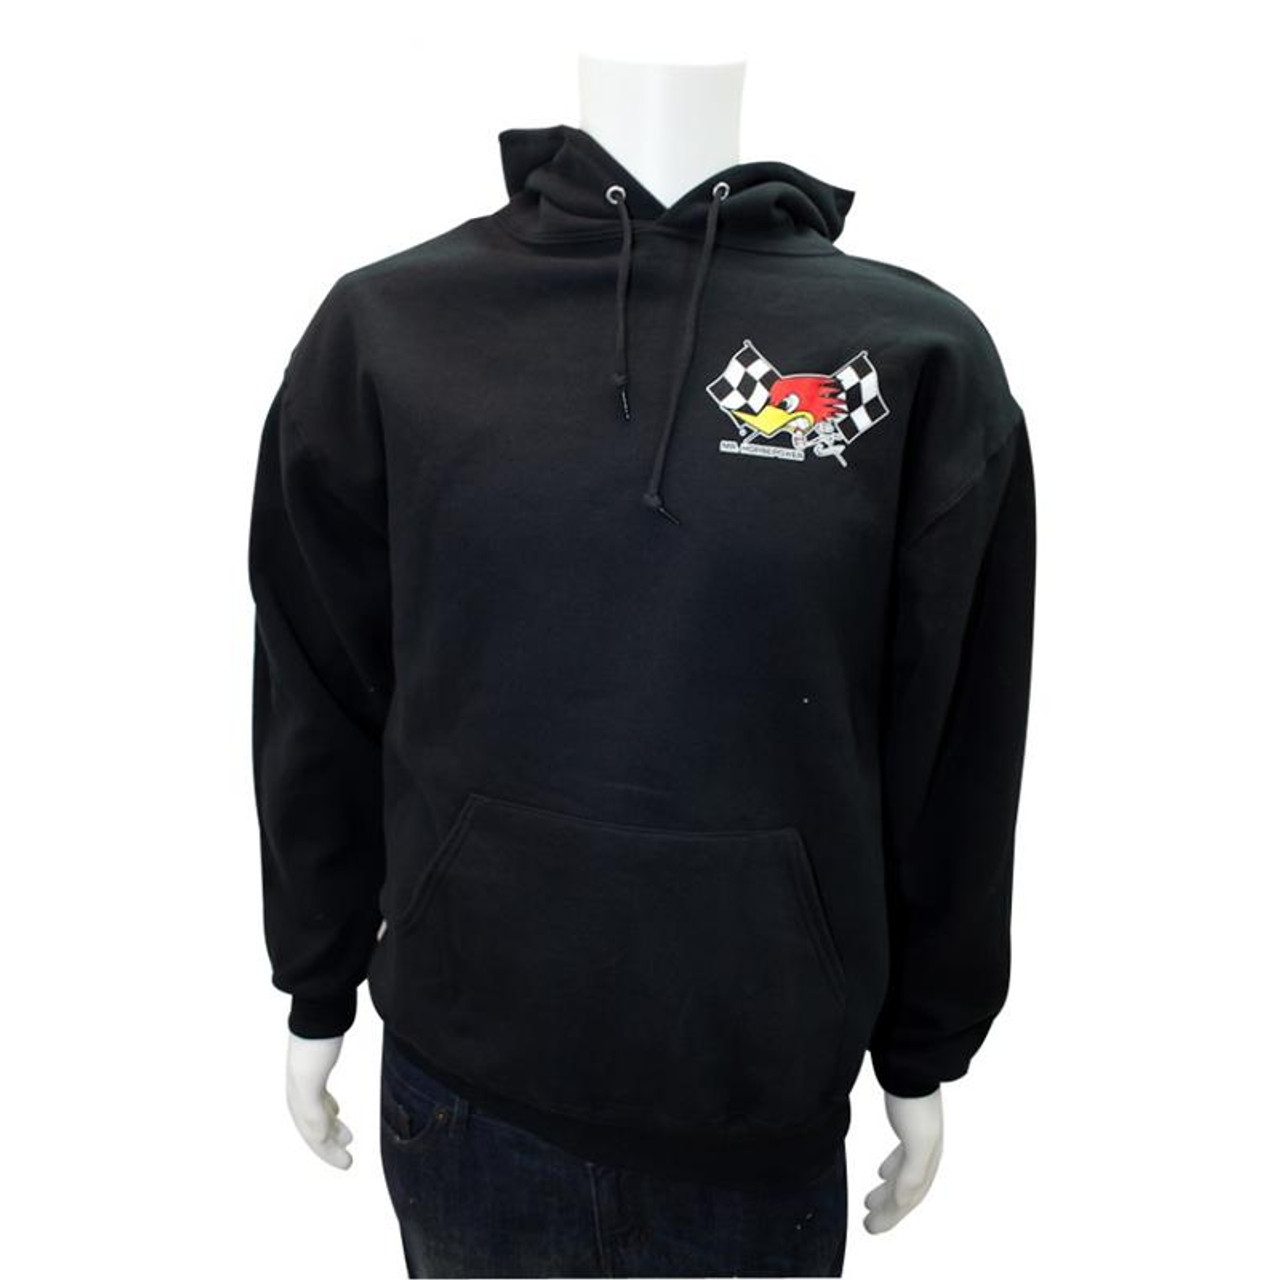 Mr. Horsepower Checkered Flag Black Hoodie